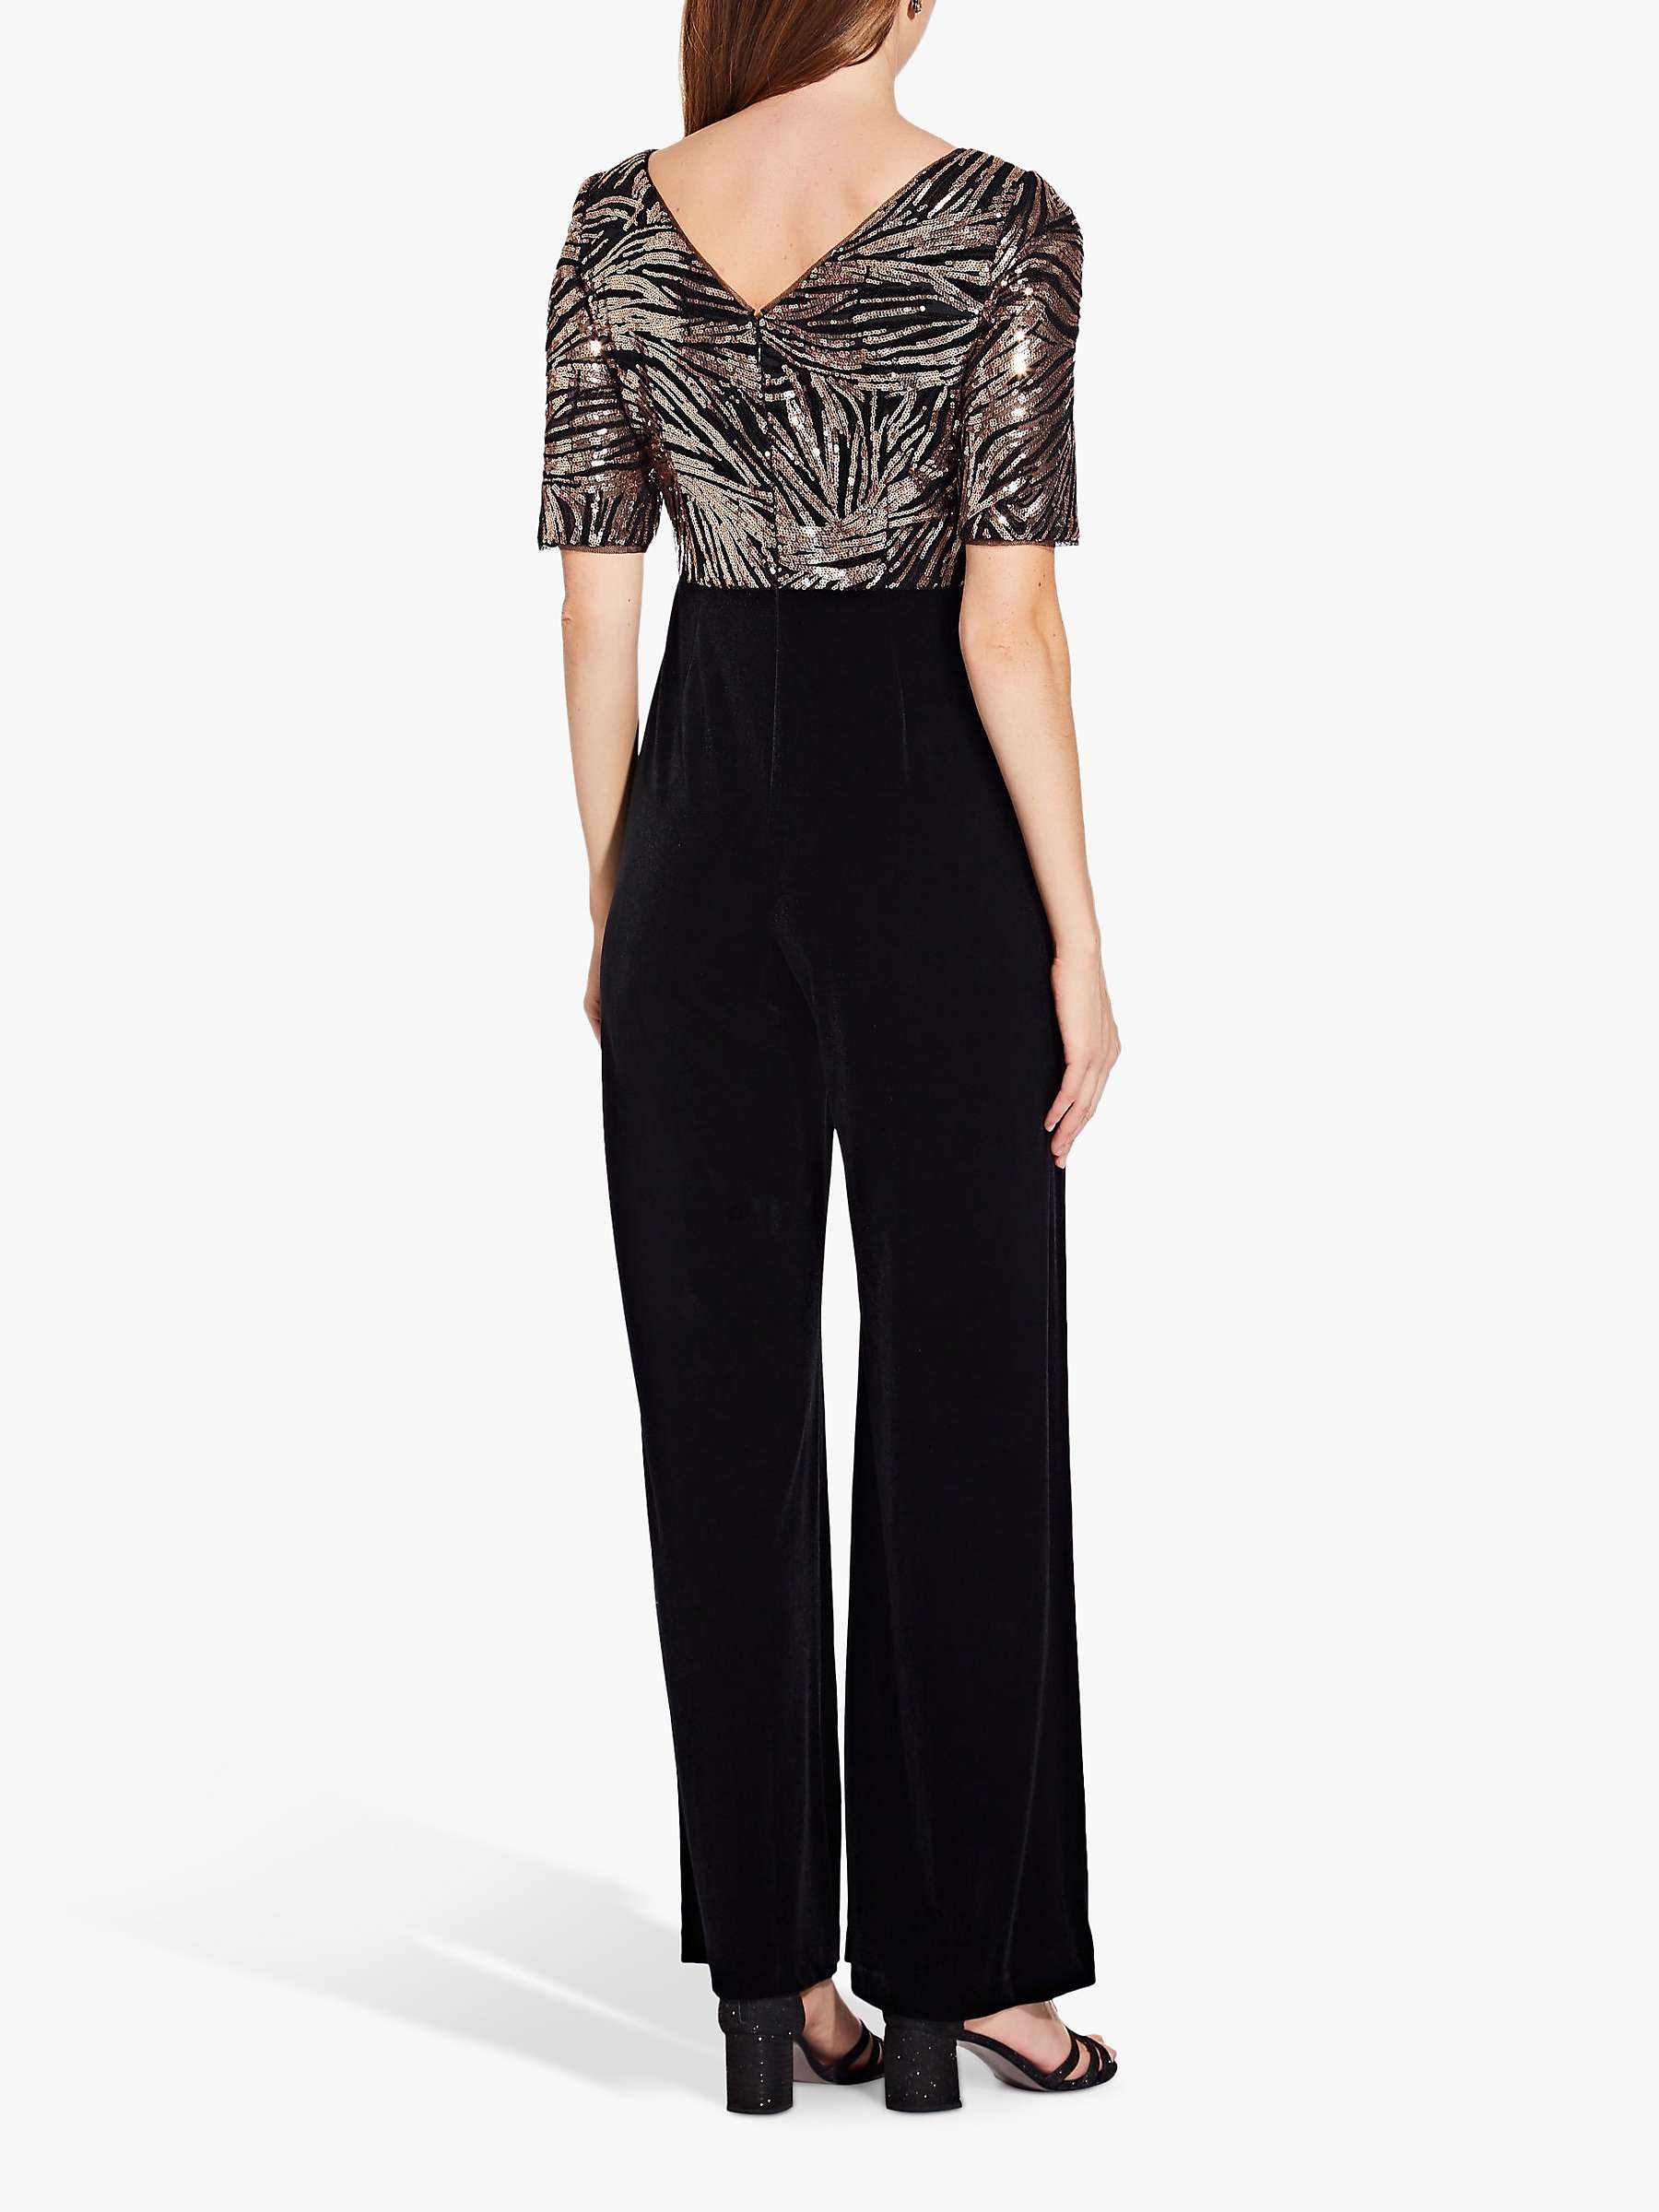 Adrianna Papell Sequin Jumpsuit Black Rose Gold At John Lewis Partners